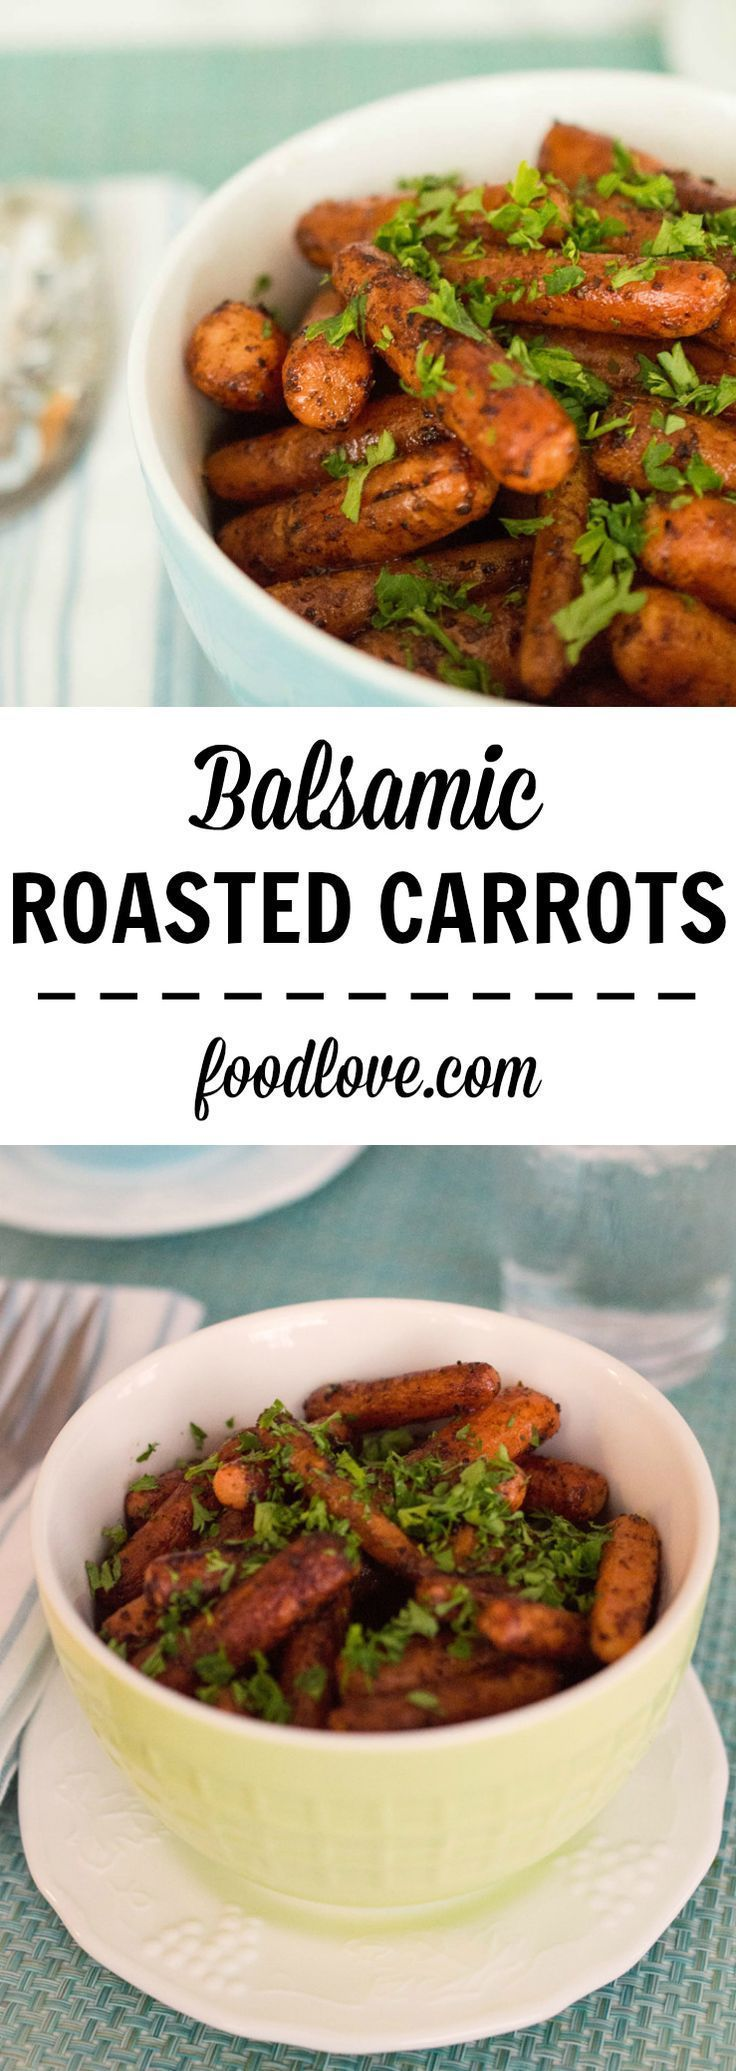 Tangy, sweet and salty, with a deep roasted flavor and a hint of garlic, these balsamic roasted carrots require only five minutes of prep time.